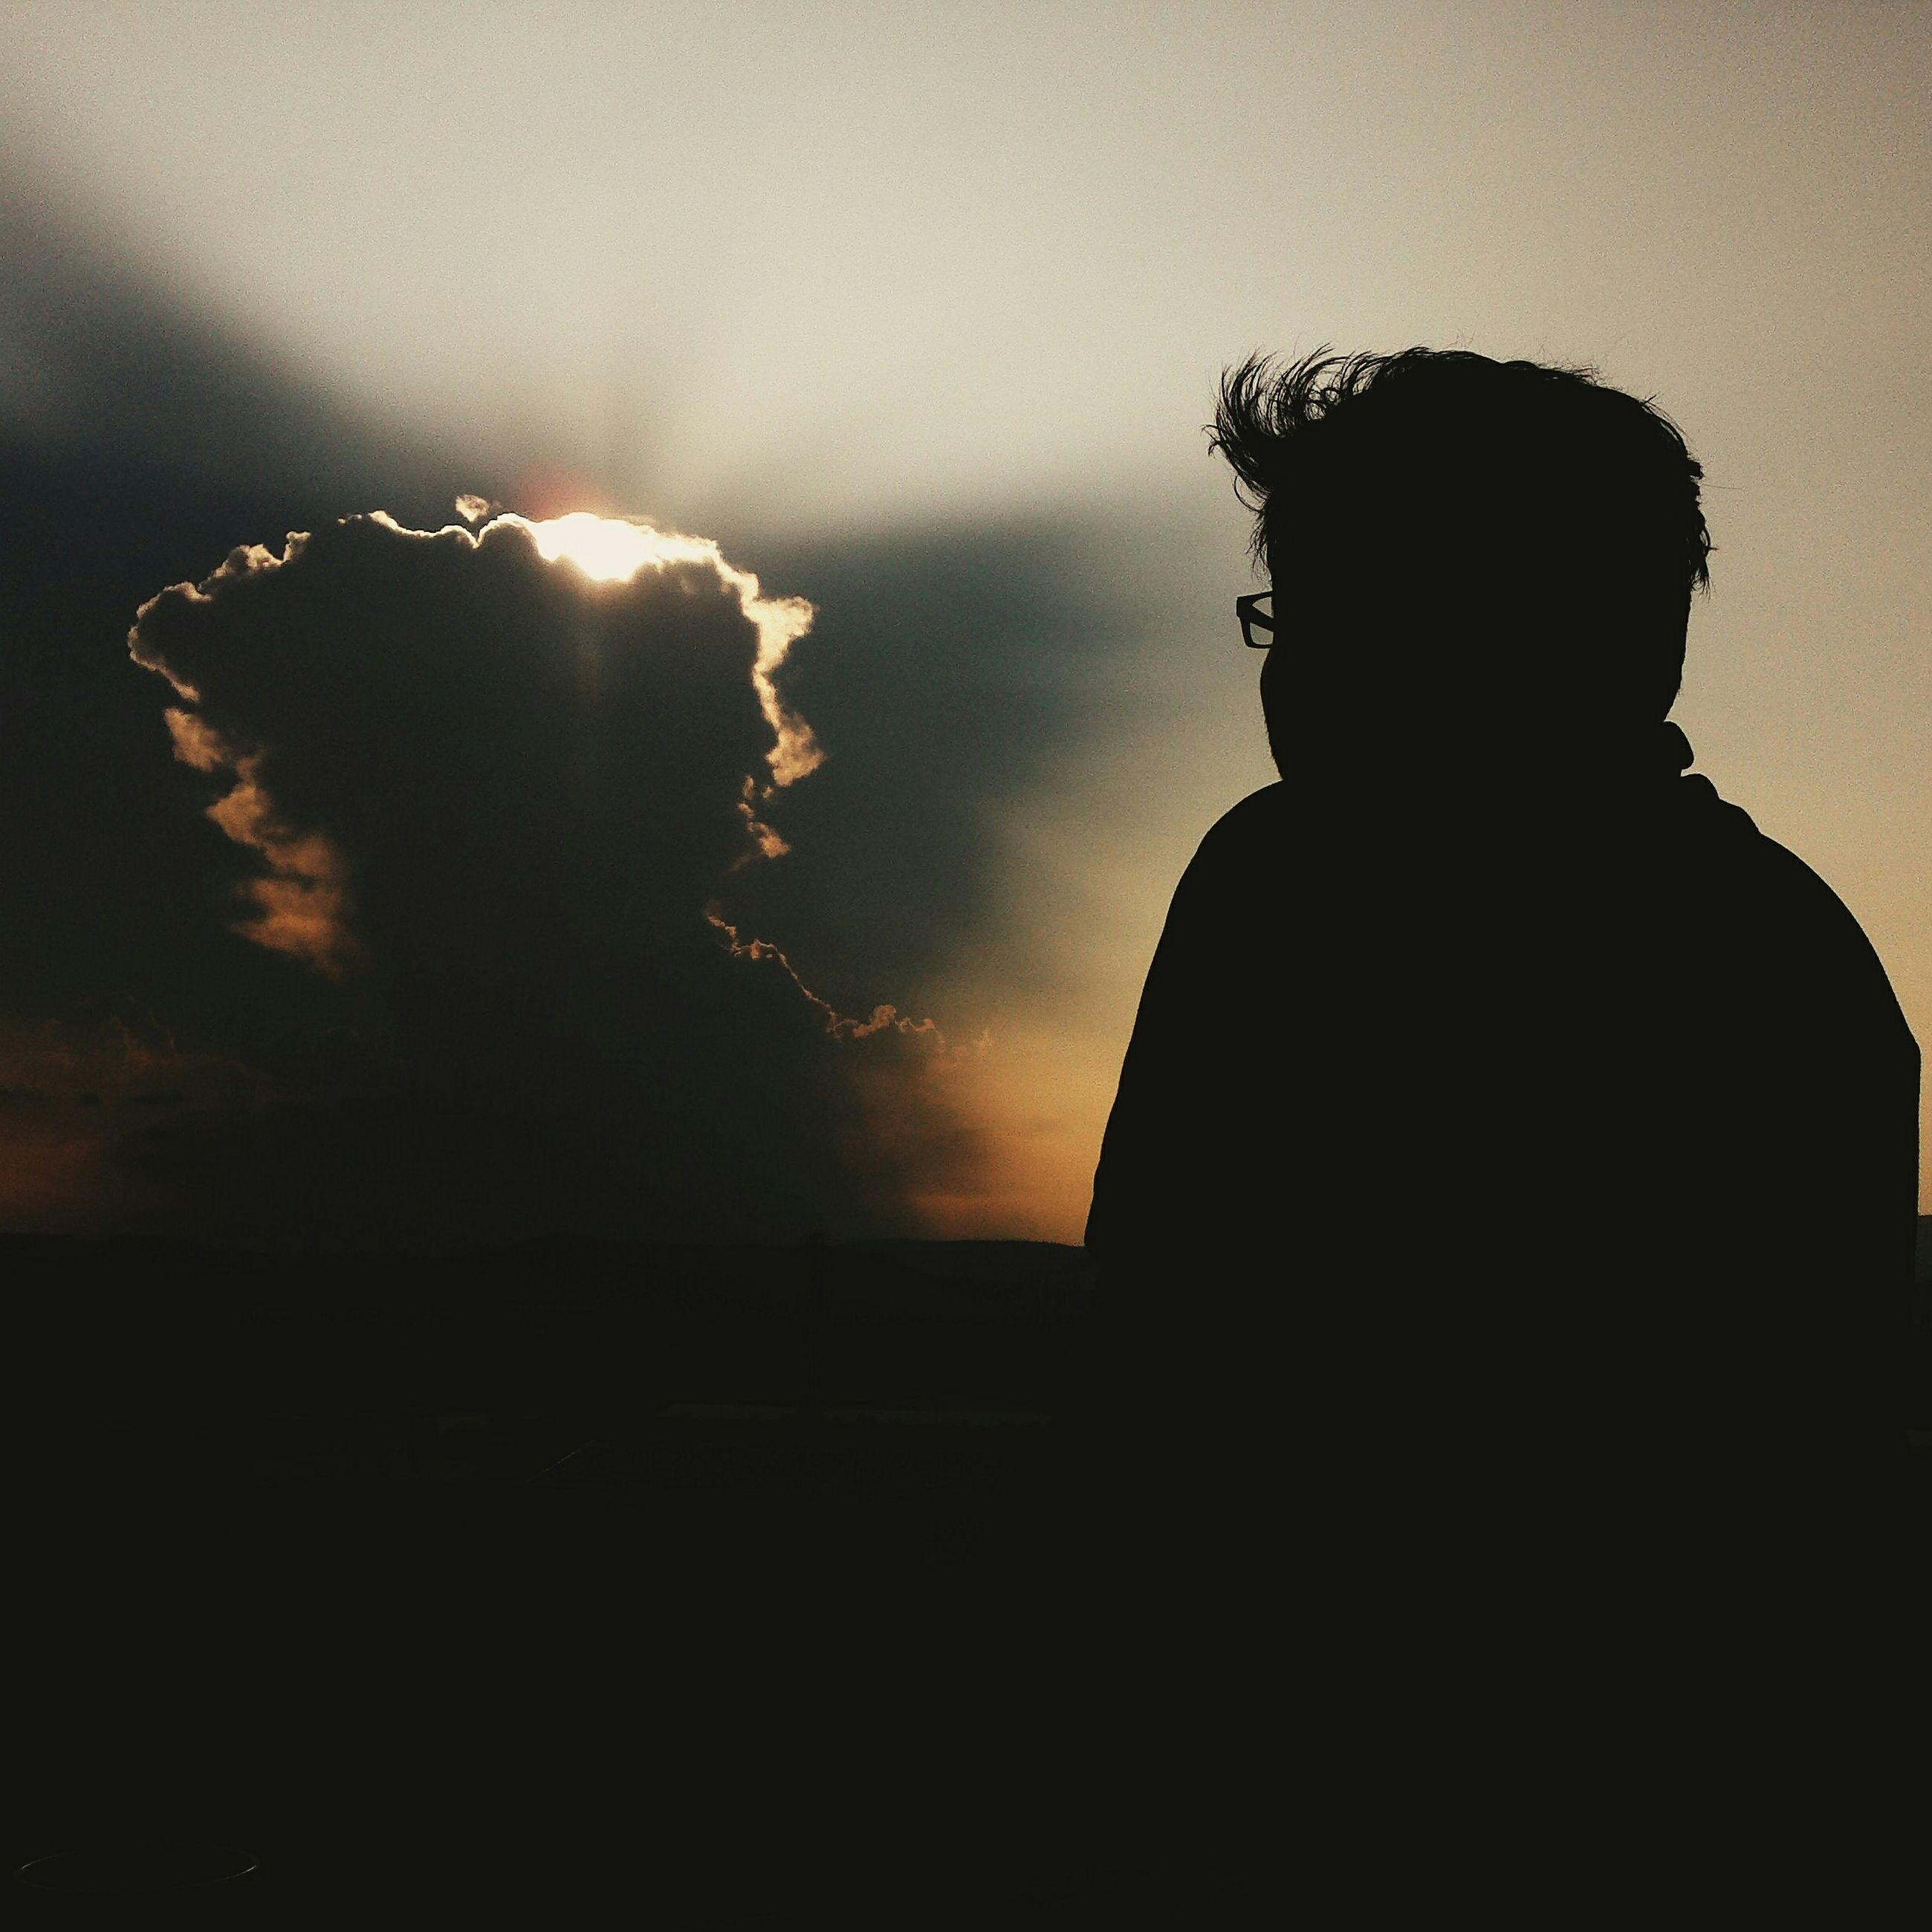 silhouette, sky, dark, cloud - sky, dusk, copy space, night, sunset, statue, cloudy, rear view, nature, lifestyles, outdoors, leisure activity, men, tranquility, outline